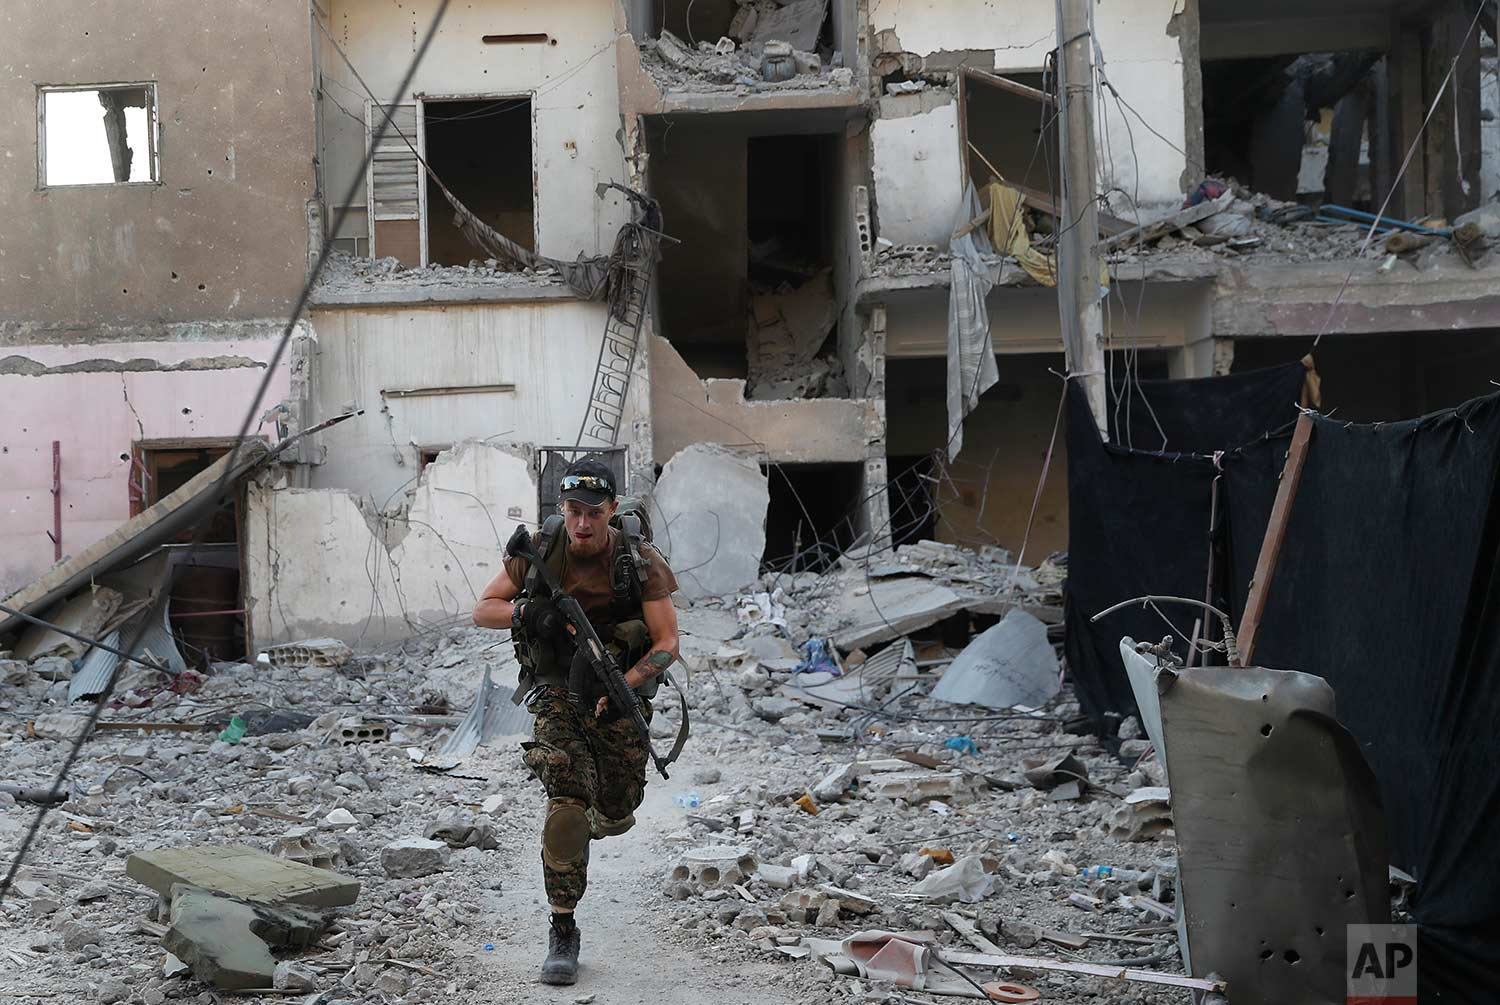 A U.S.-backed Syrian Democratic Forces fighter runs in front of a damaged building as he crosses a street on the front line, in Raqqa city, Syria, Thursday, July 27, 2017. (AP Photo/Hussein Malla)